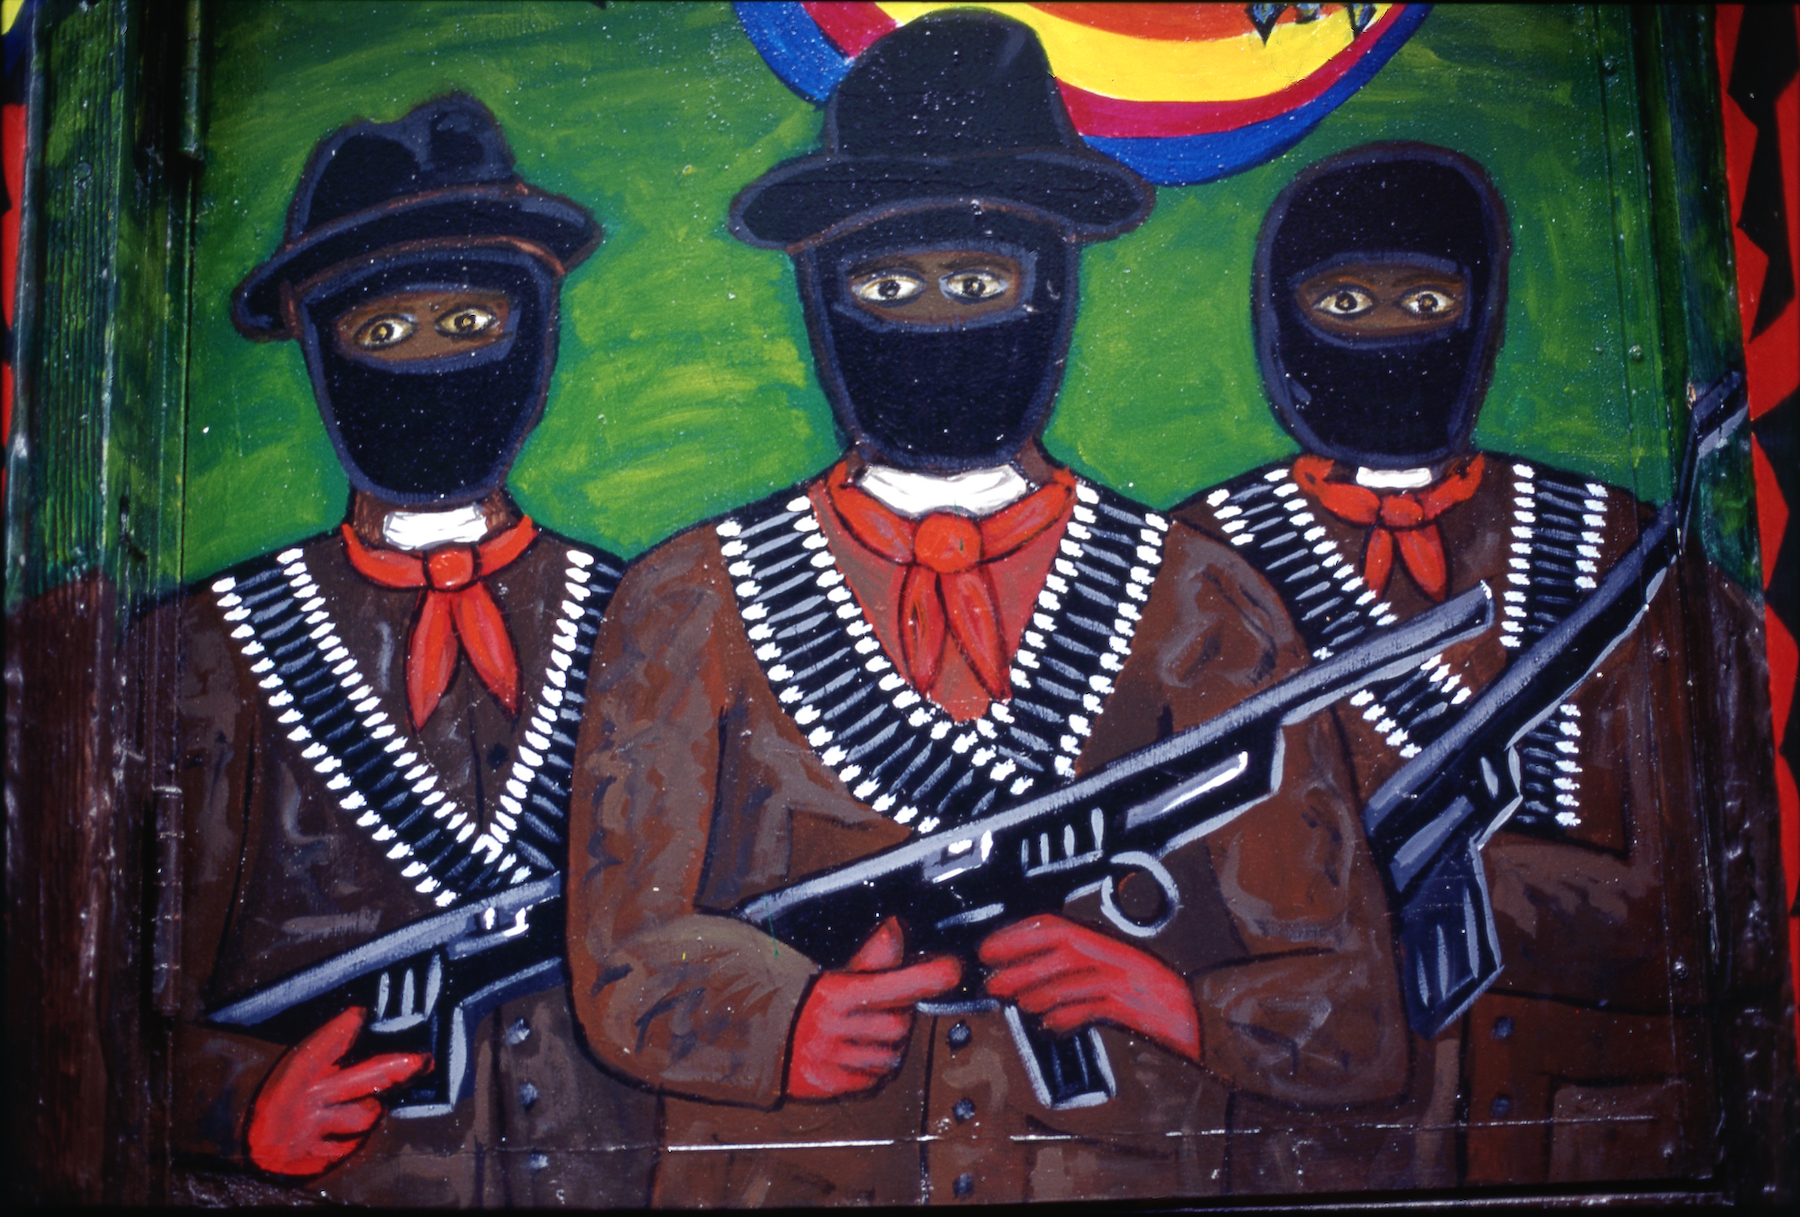 Close-up of section of mural that depicts three masked Zapatista fighters with guns